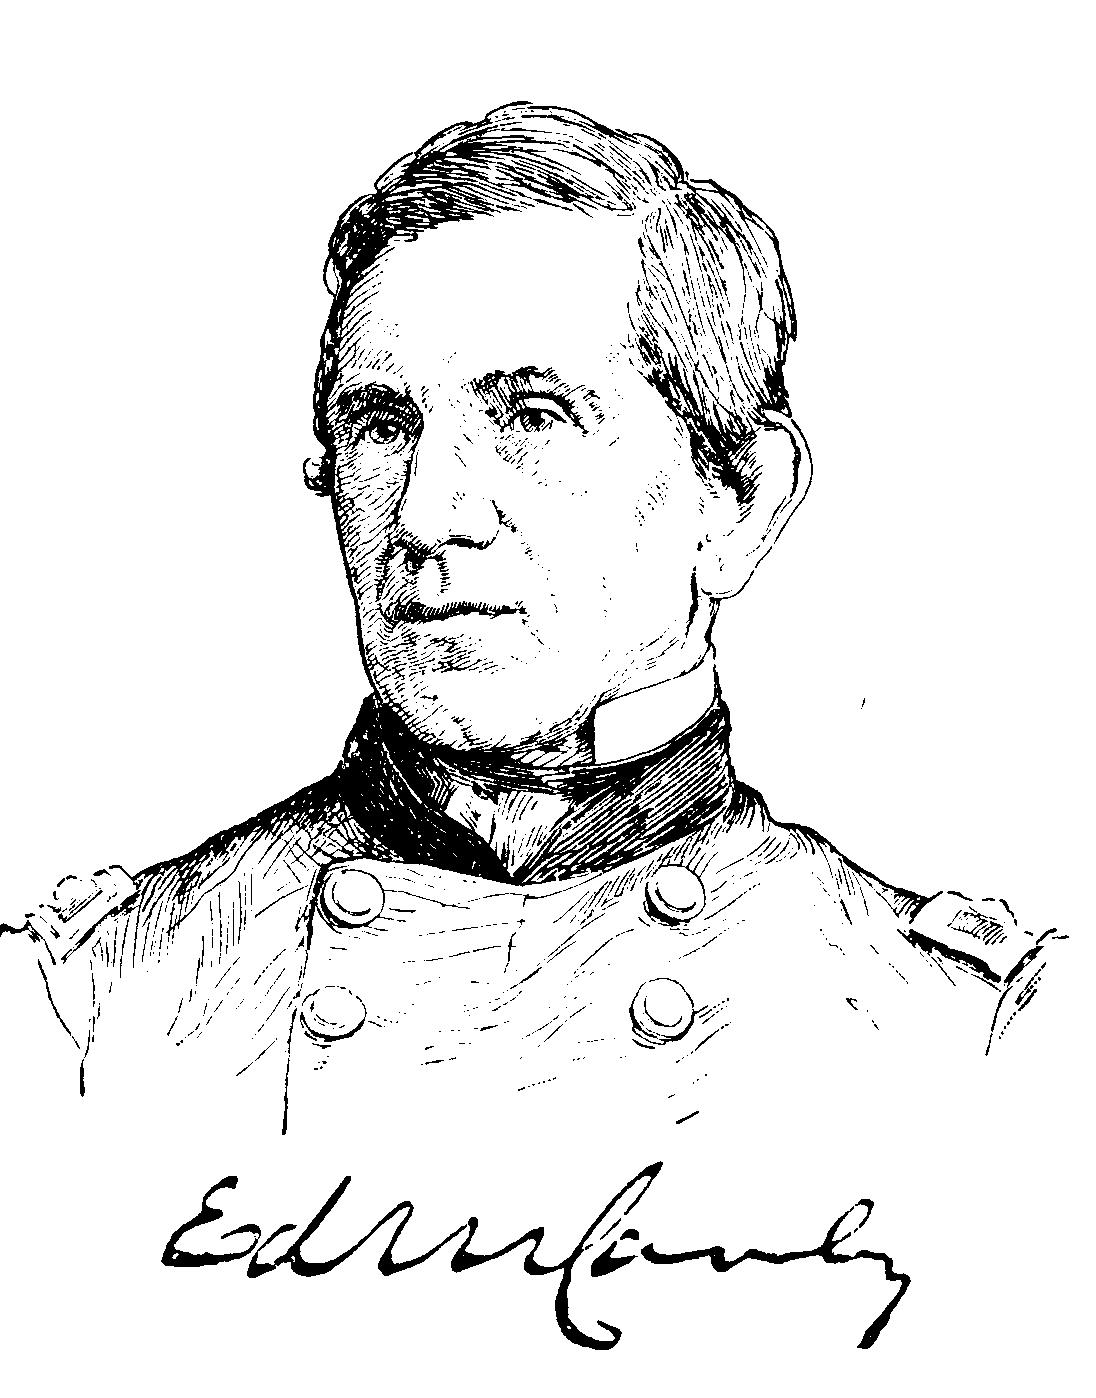 General Richard Canby